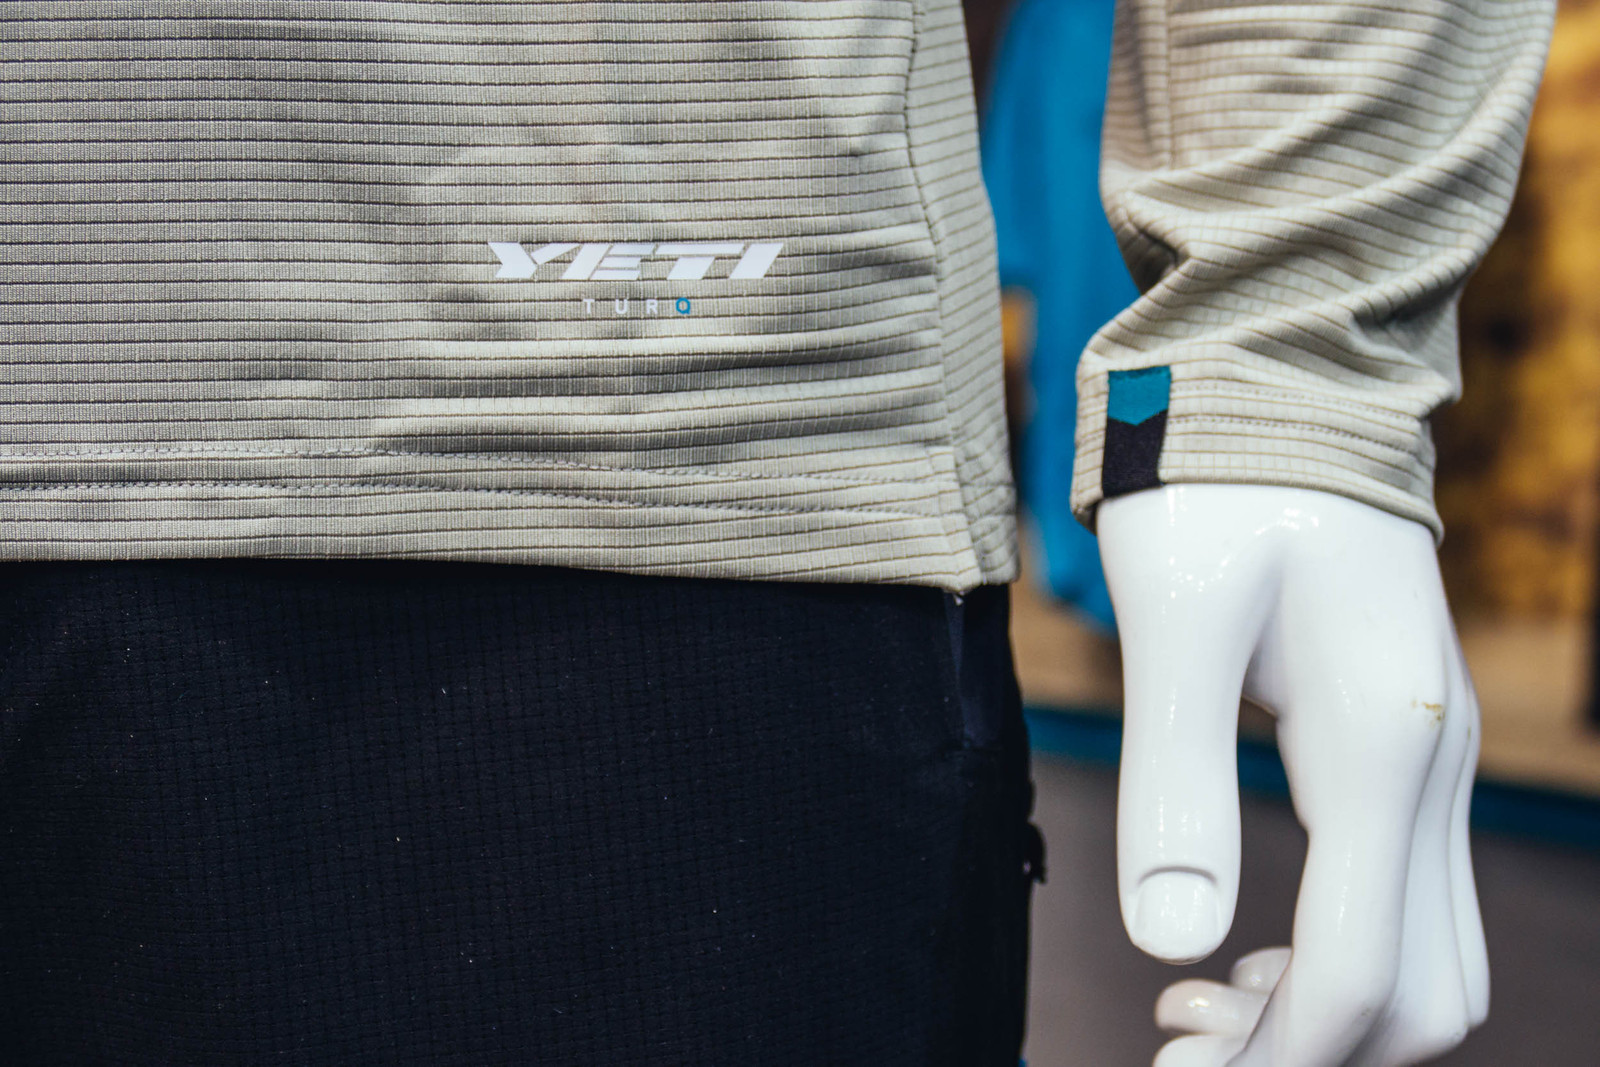 f377e266b Yeti s new TURQ.Air apparel features sun protection